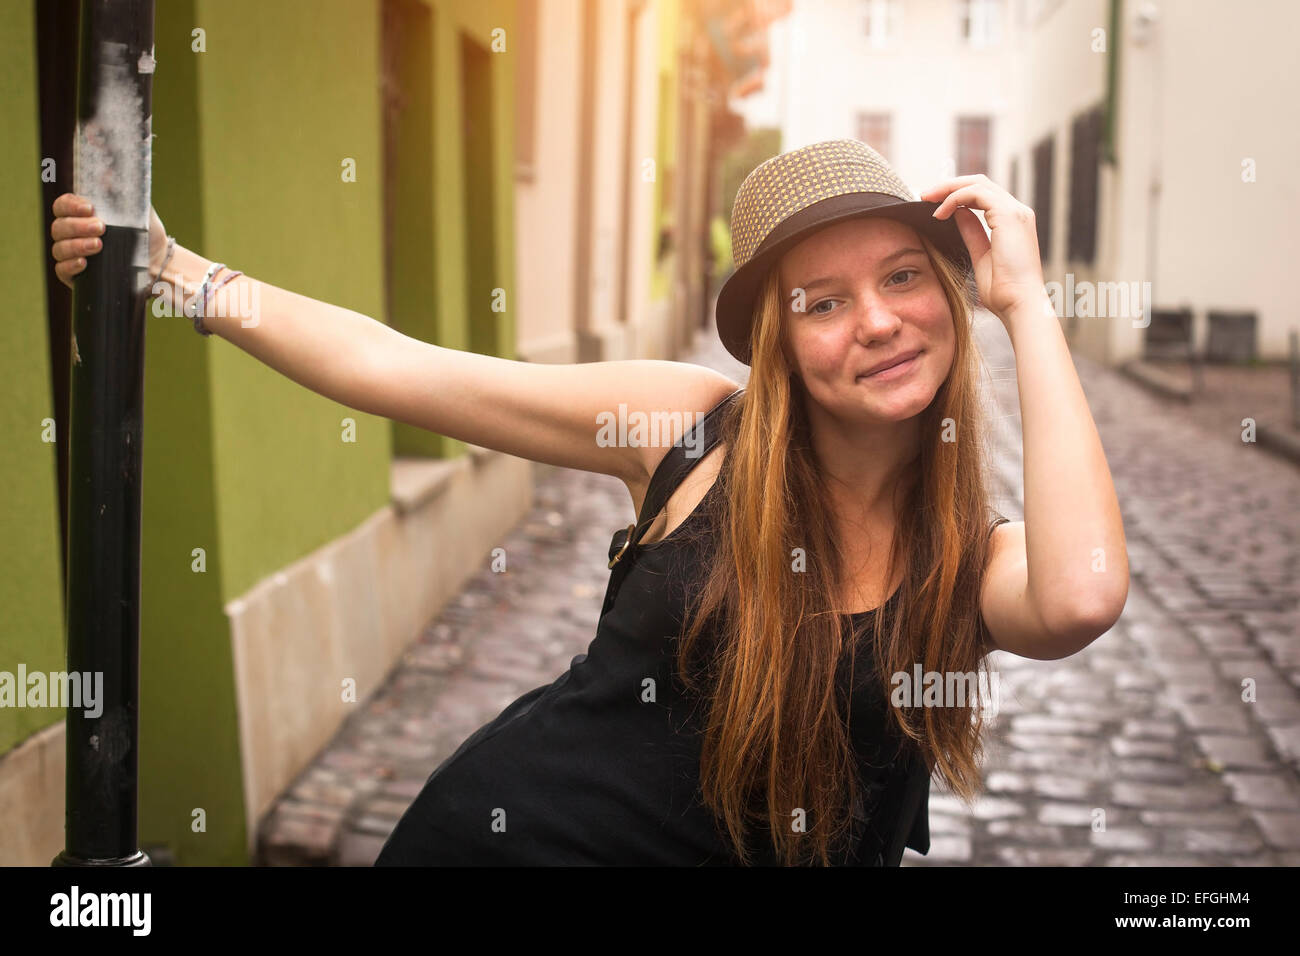 Cute teen girl on the street of old European city. - Stock Image